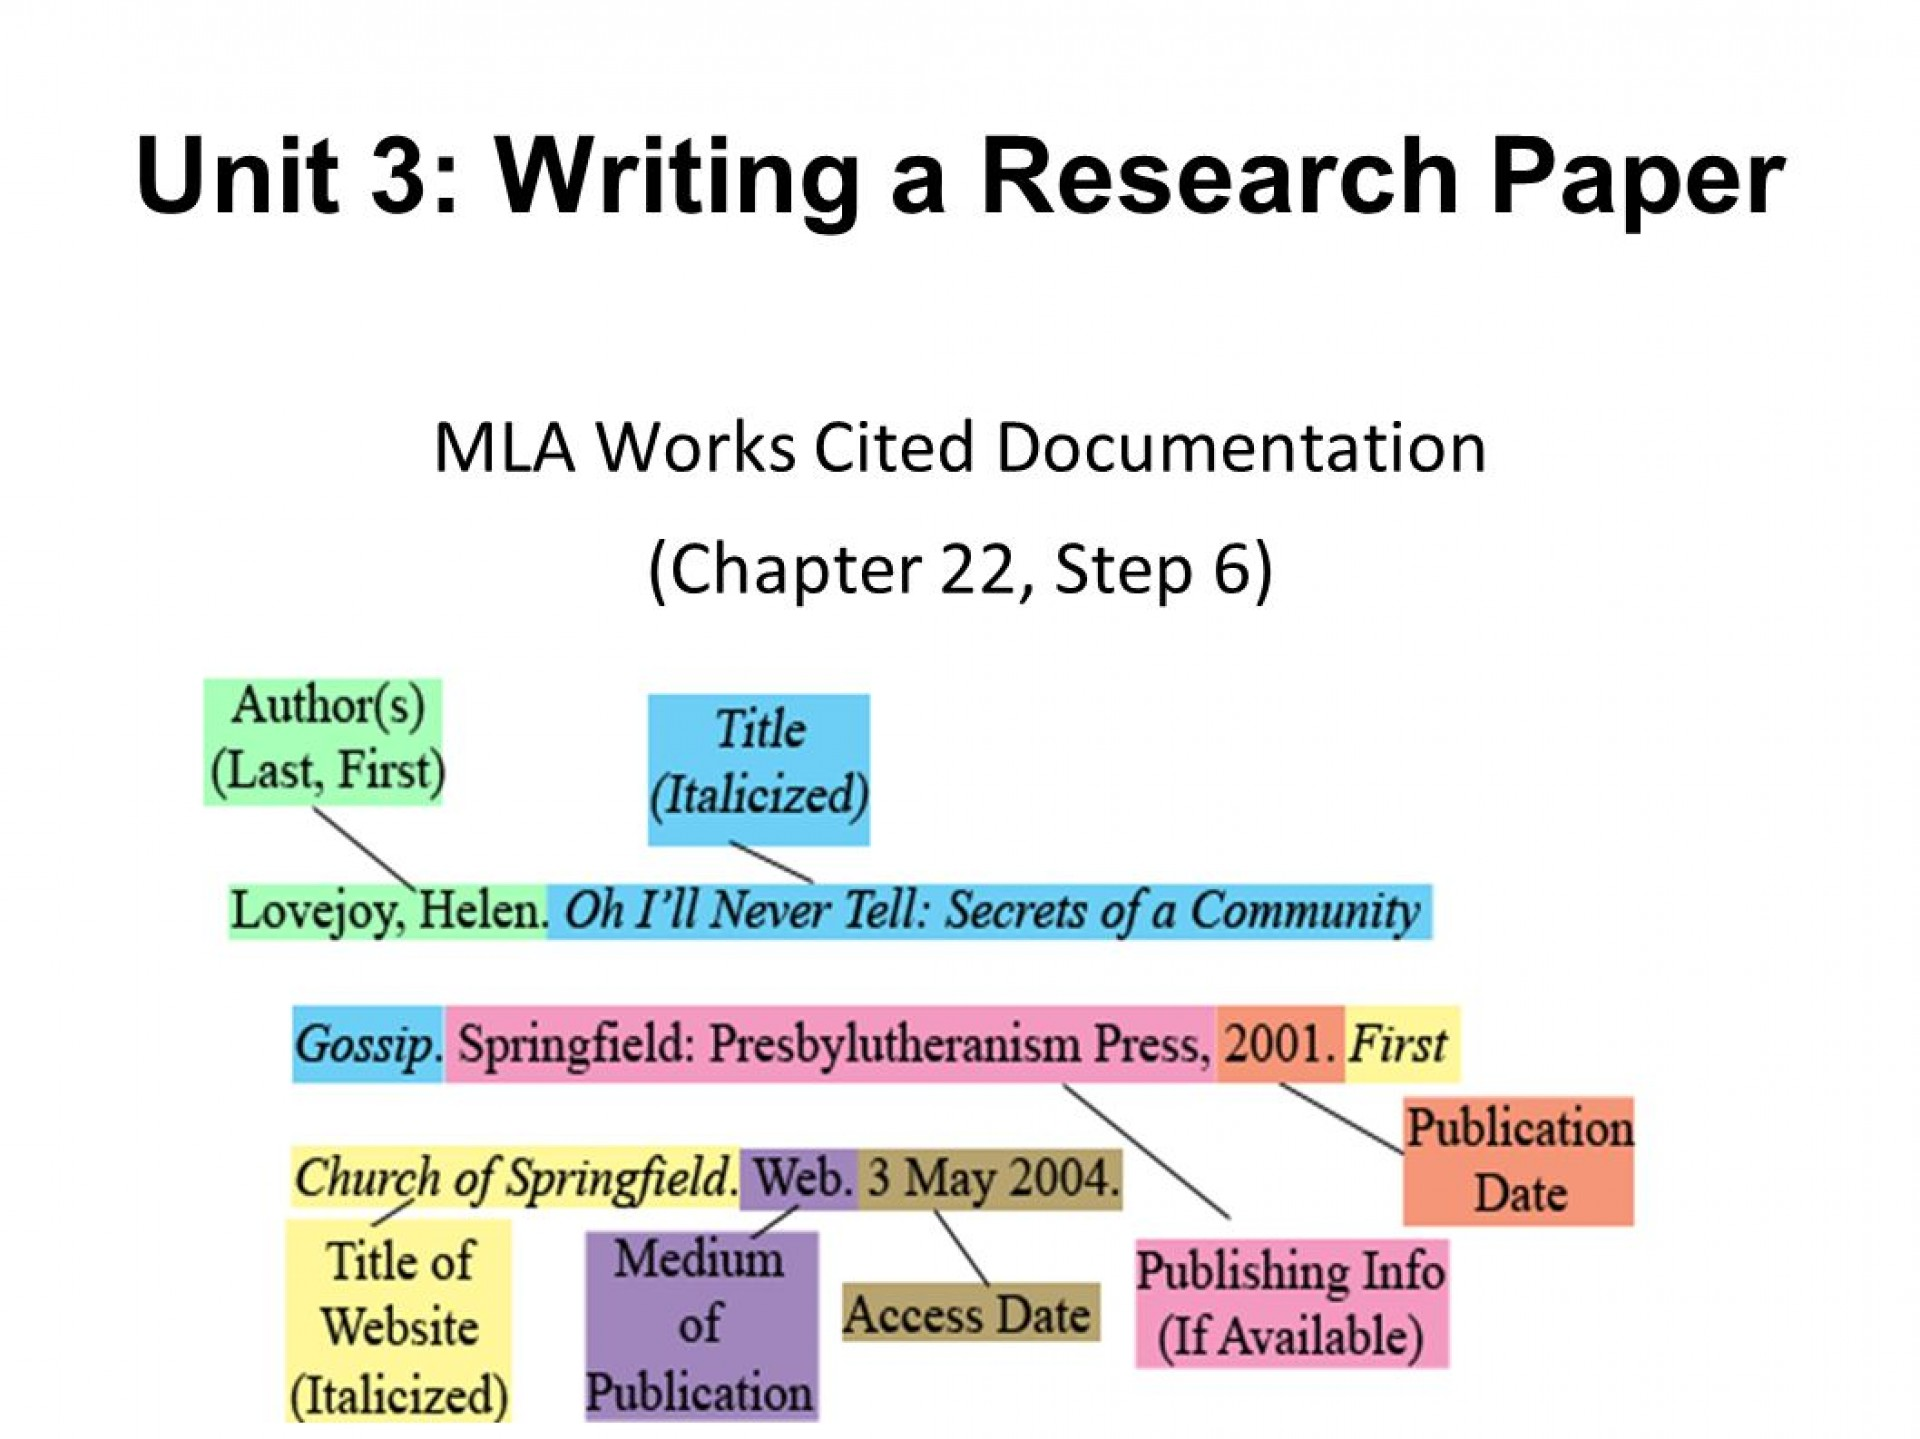 012 Slide 1 Cite Research Paper Staggering Mla How To Quotes In Someone Else's 1920